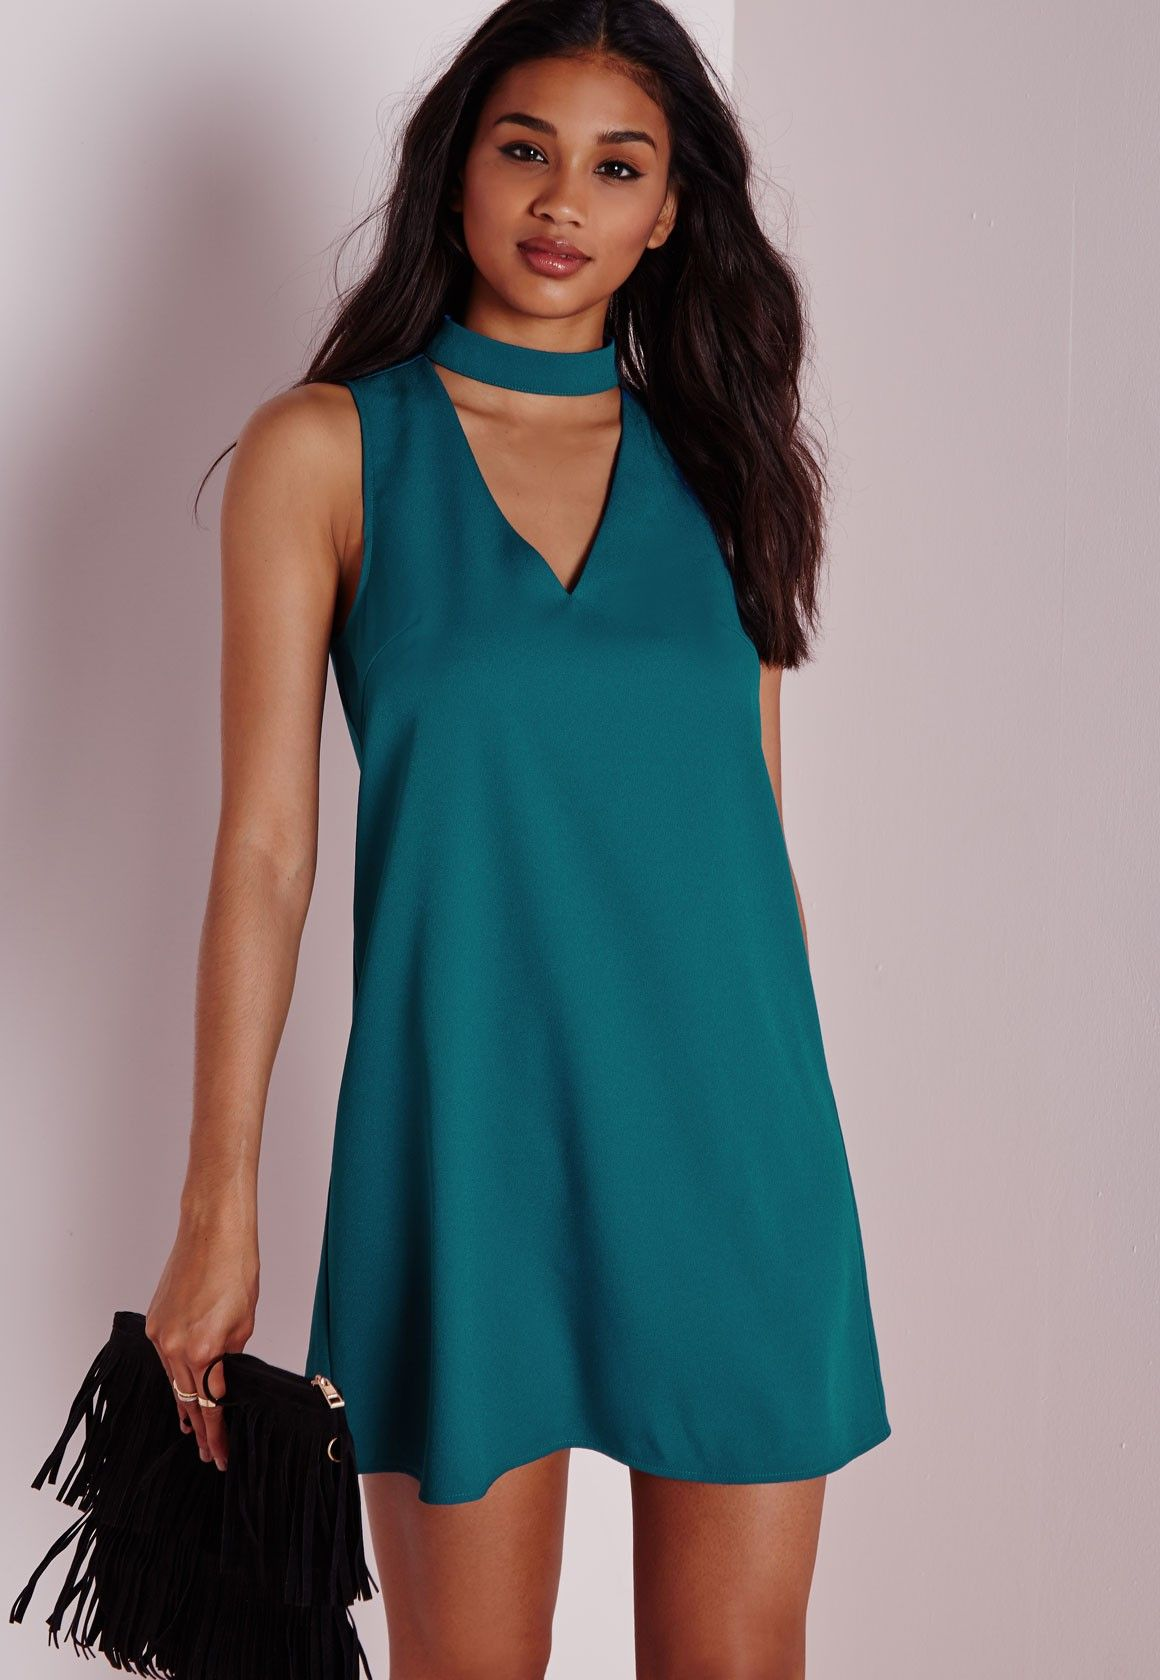 ffa126a5fc77 Cause a little chaos this season in this teal blue shift dress. With  strappy high neck feature and plunging v neckline this dress is totally ...